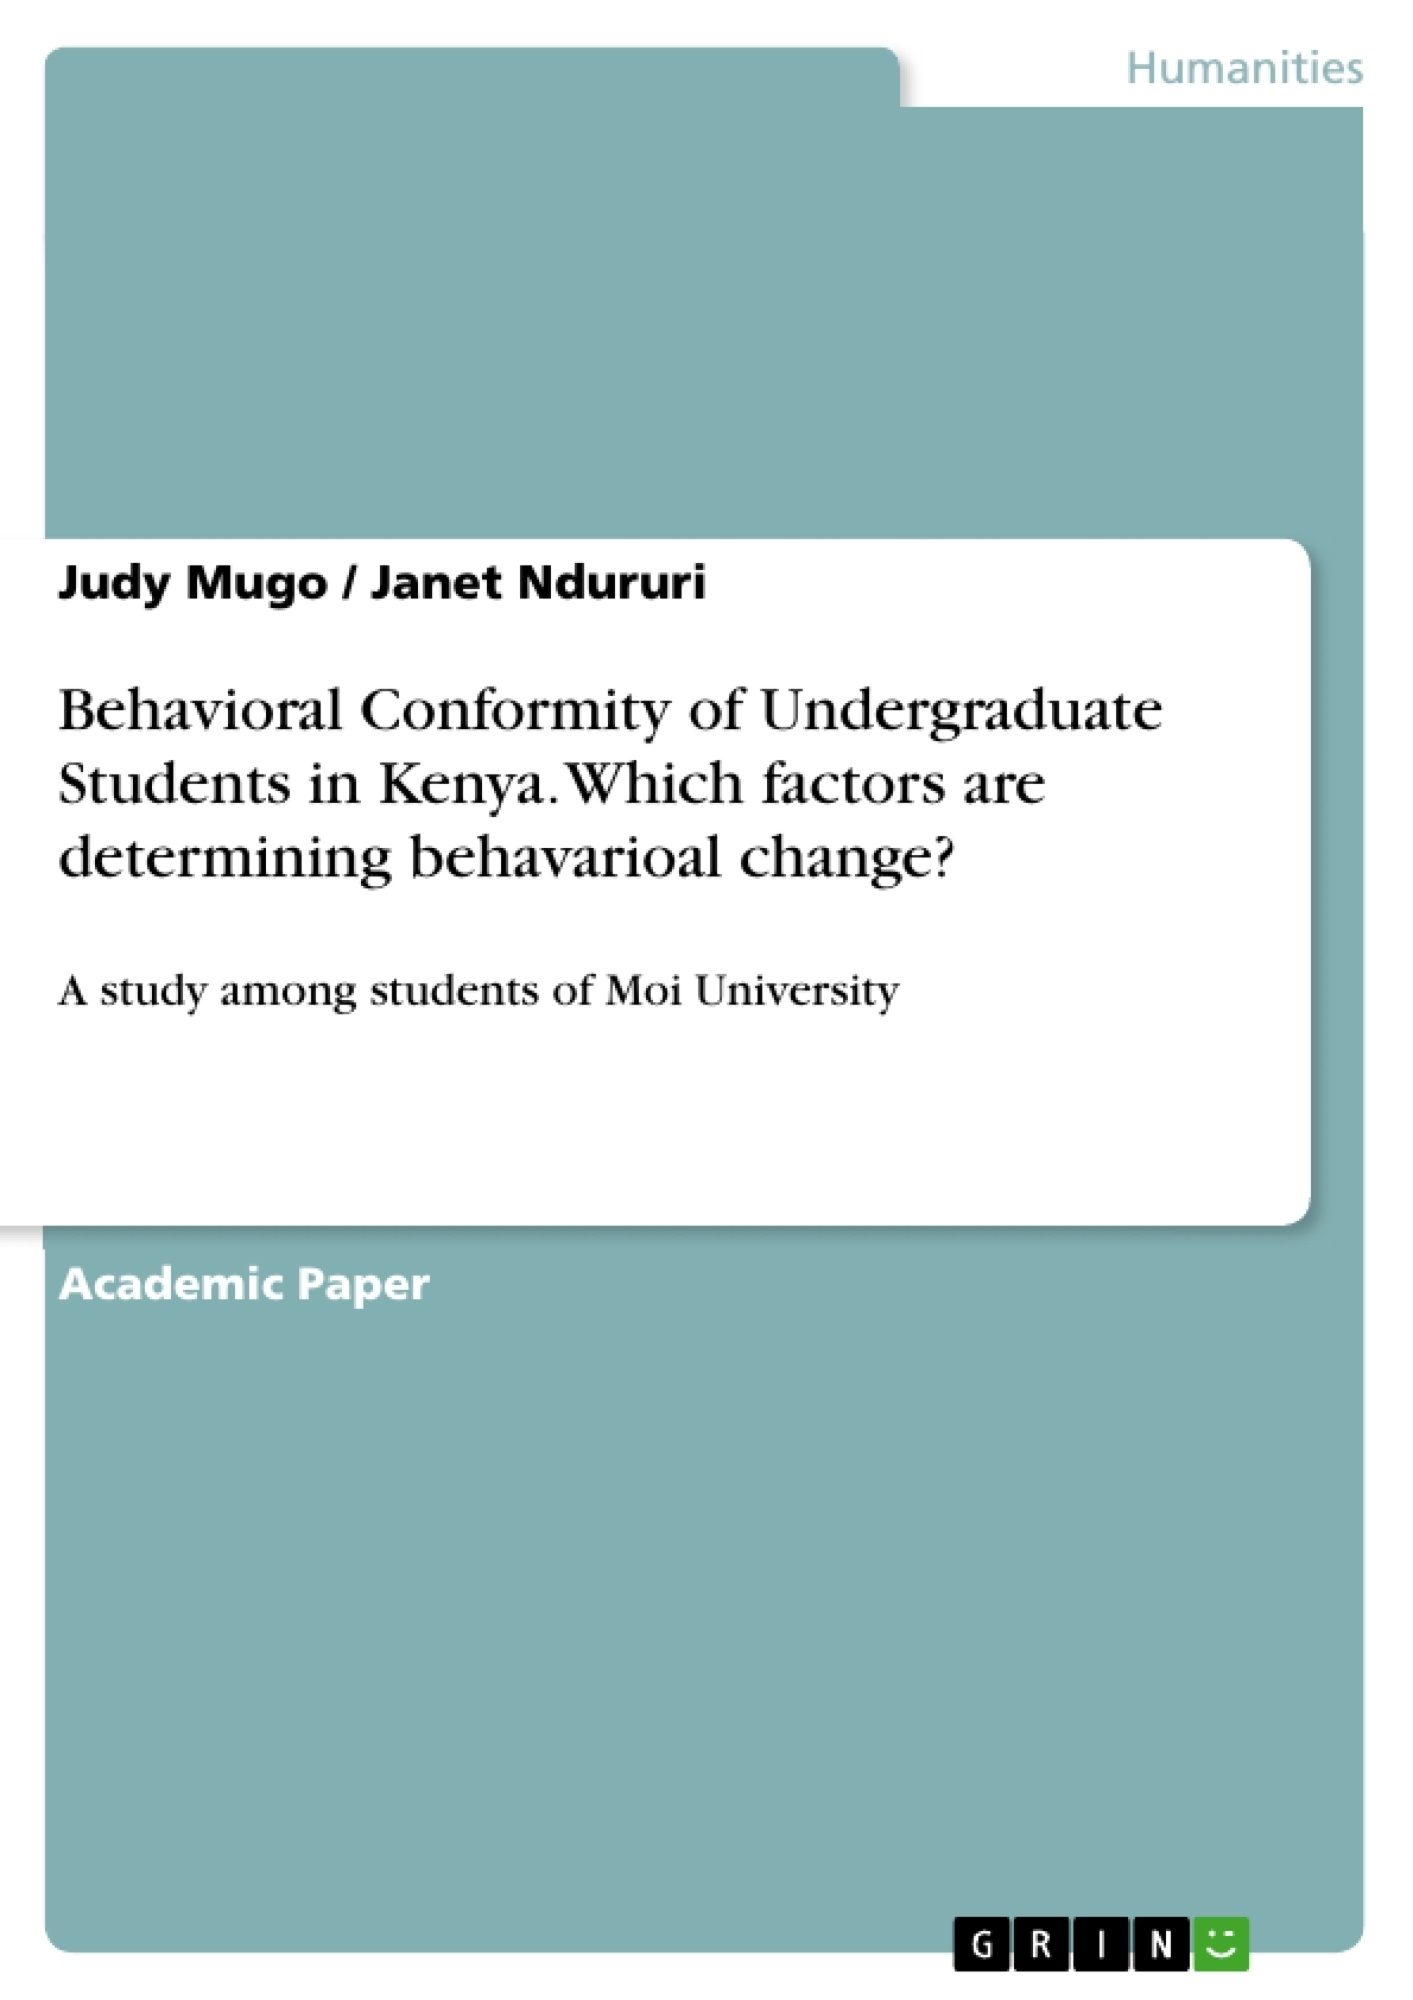 Title: Behavioral Conformity of Undergraduate Students in Kenya. Which factors are determining behavarioal change?